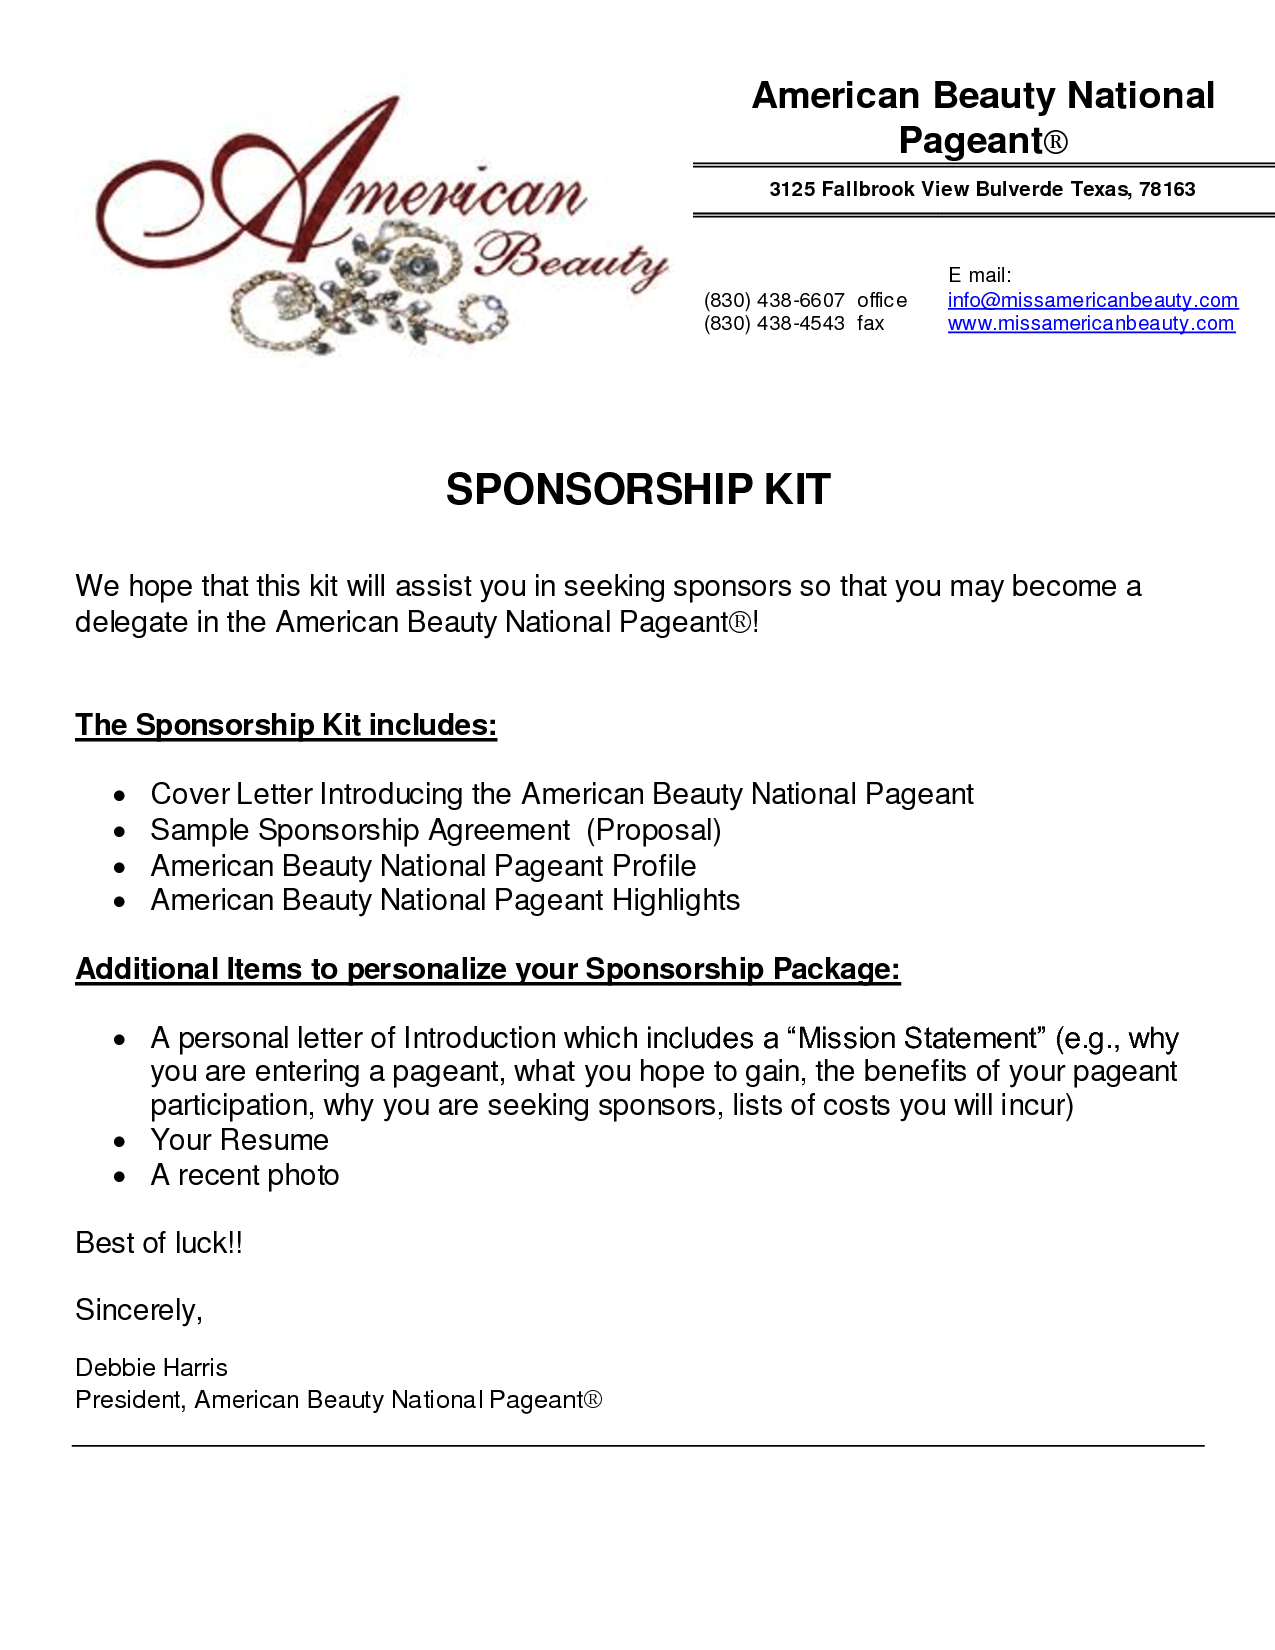 Sponsorship Letter Samples For An Event – Proposal Letter for Sponsorship Sample for Event